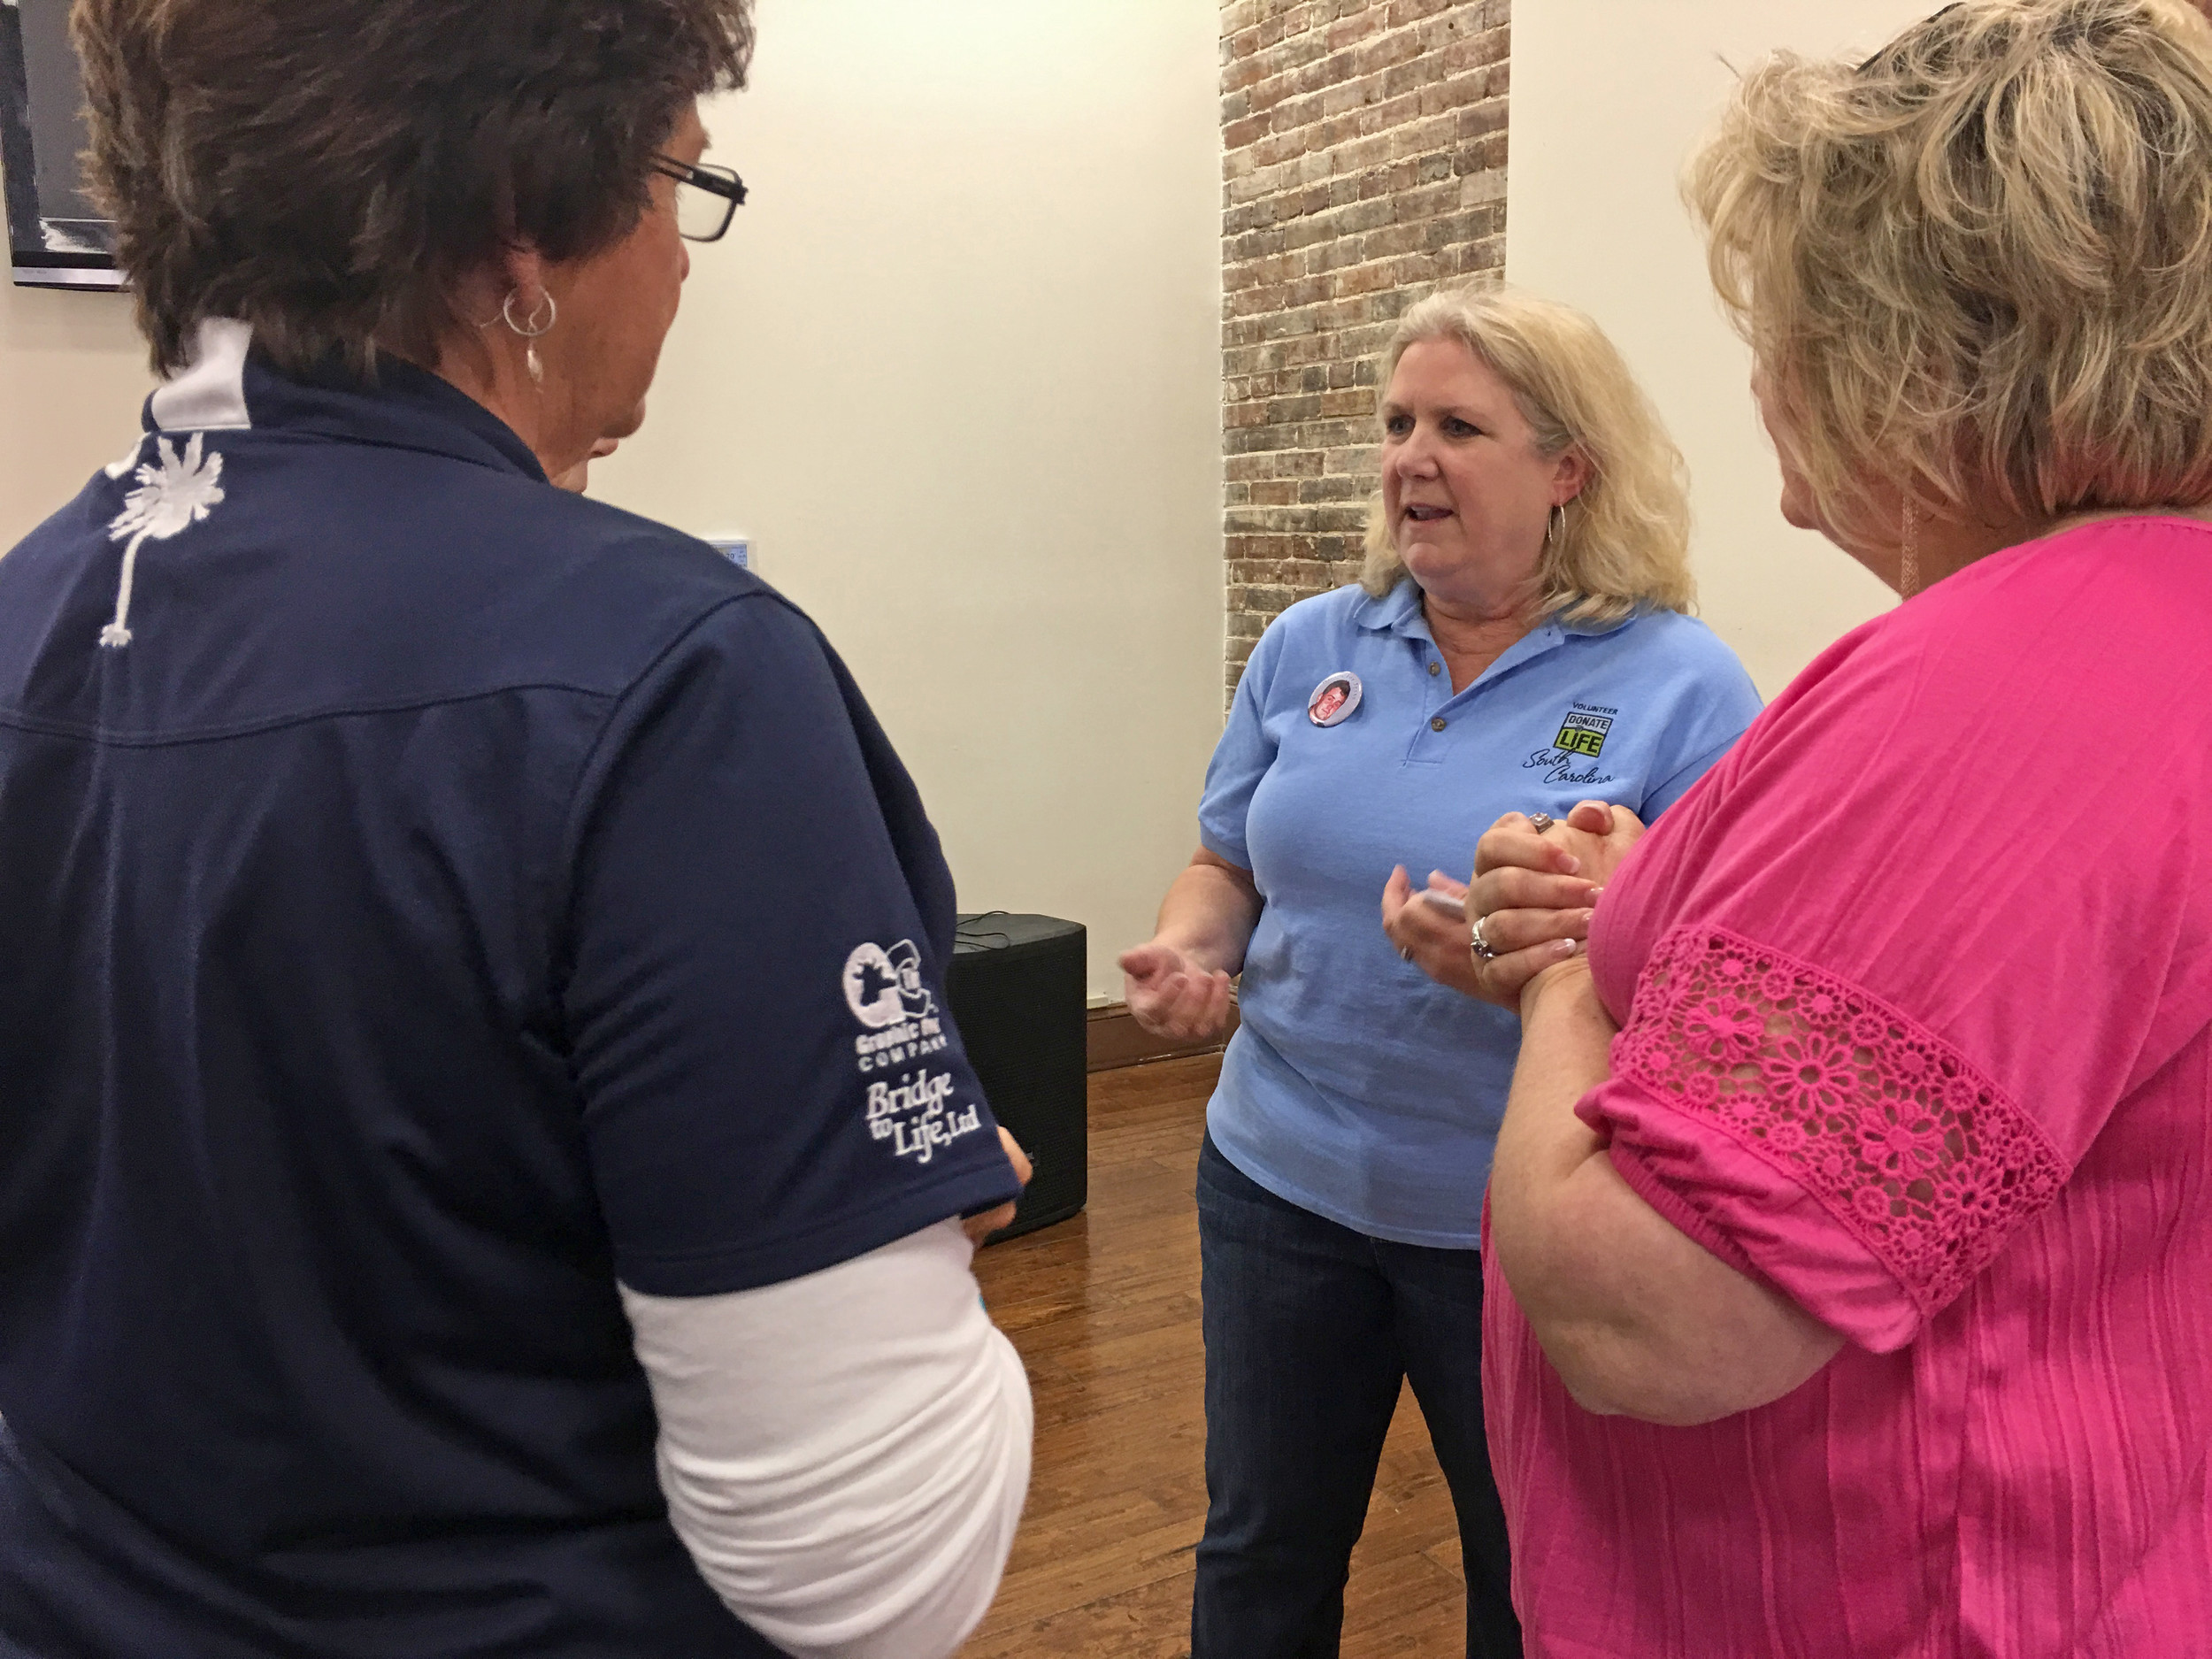 Lynn Finley, center, talks about organ donation with local health care professionals Wednesday at the City Centre in downtown Sumter.